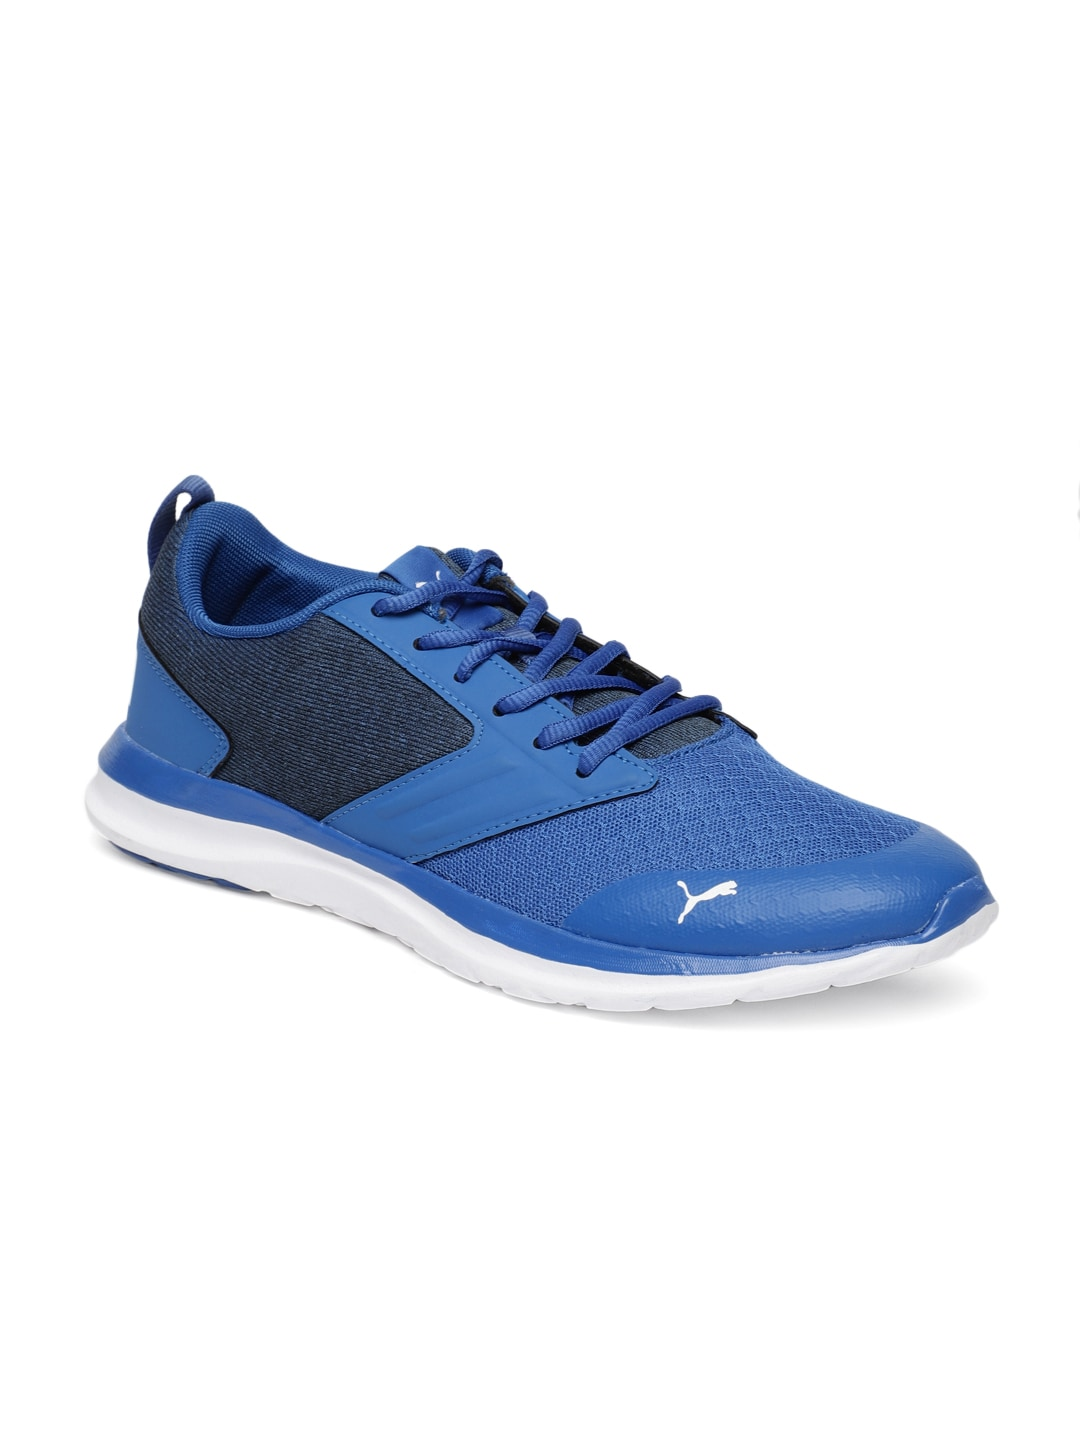 49d321dbc Puma Shoes - Buy Puma Shoes for Men   Women Online in India